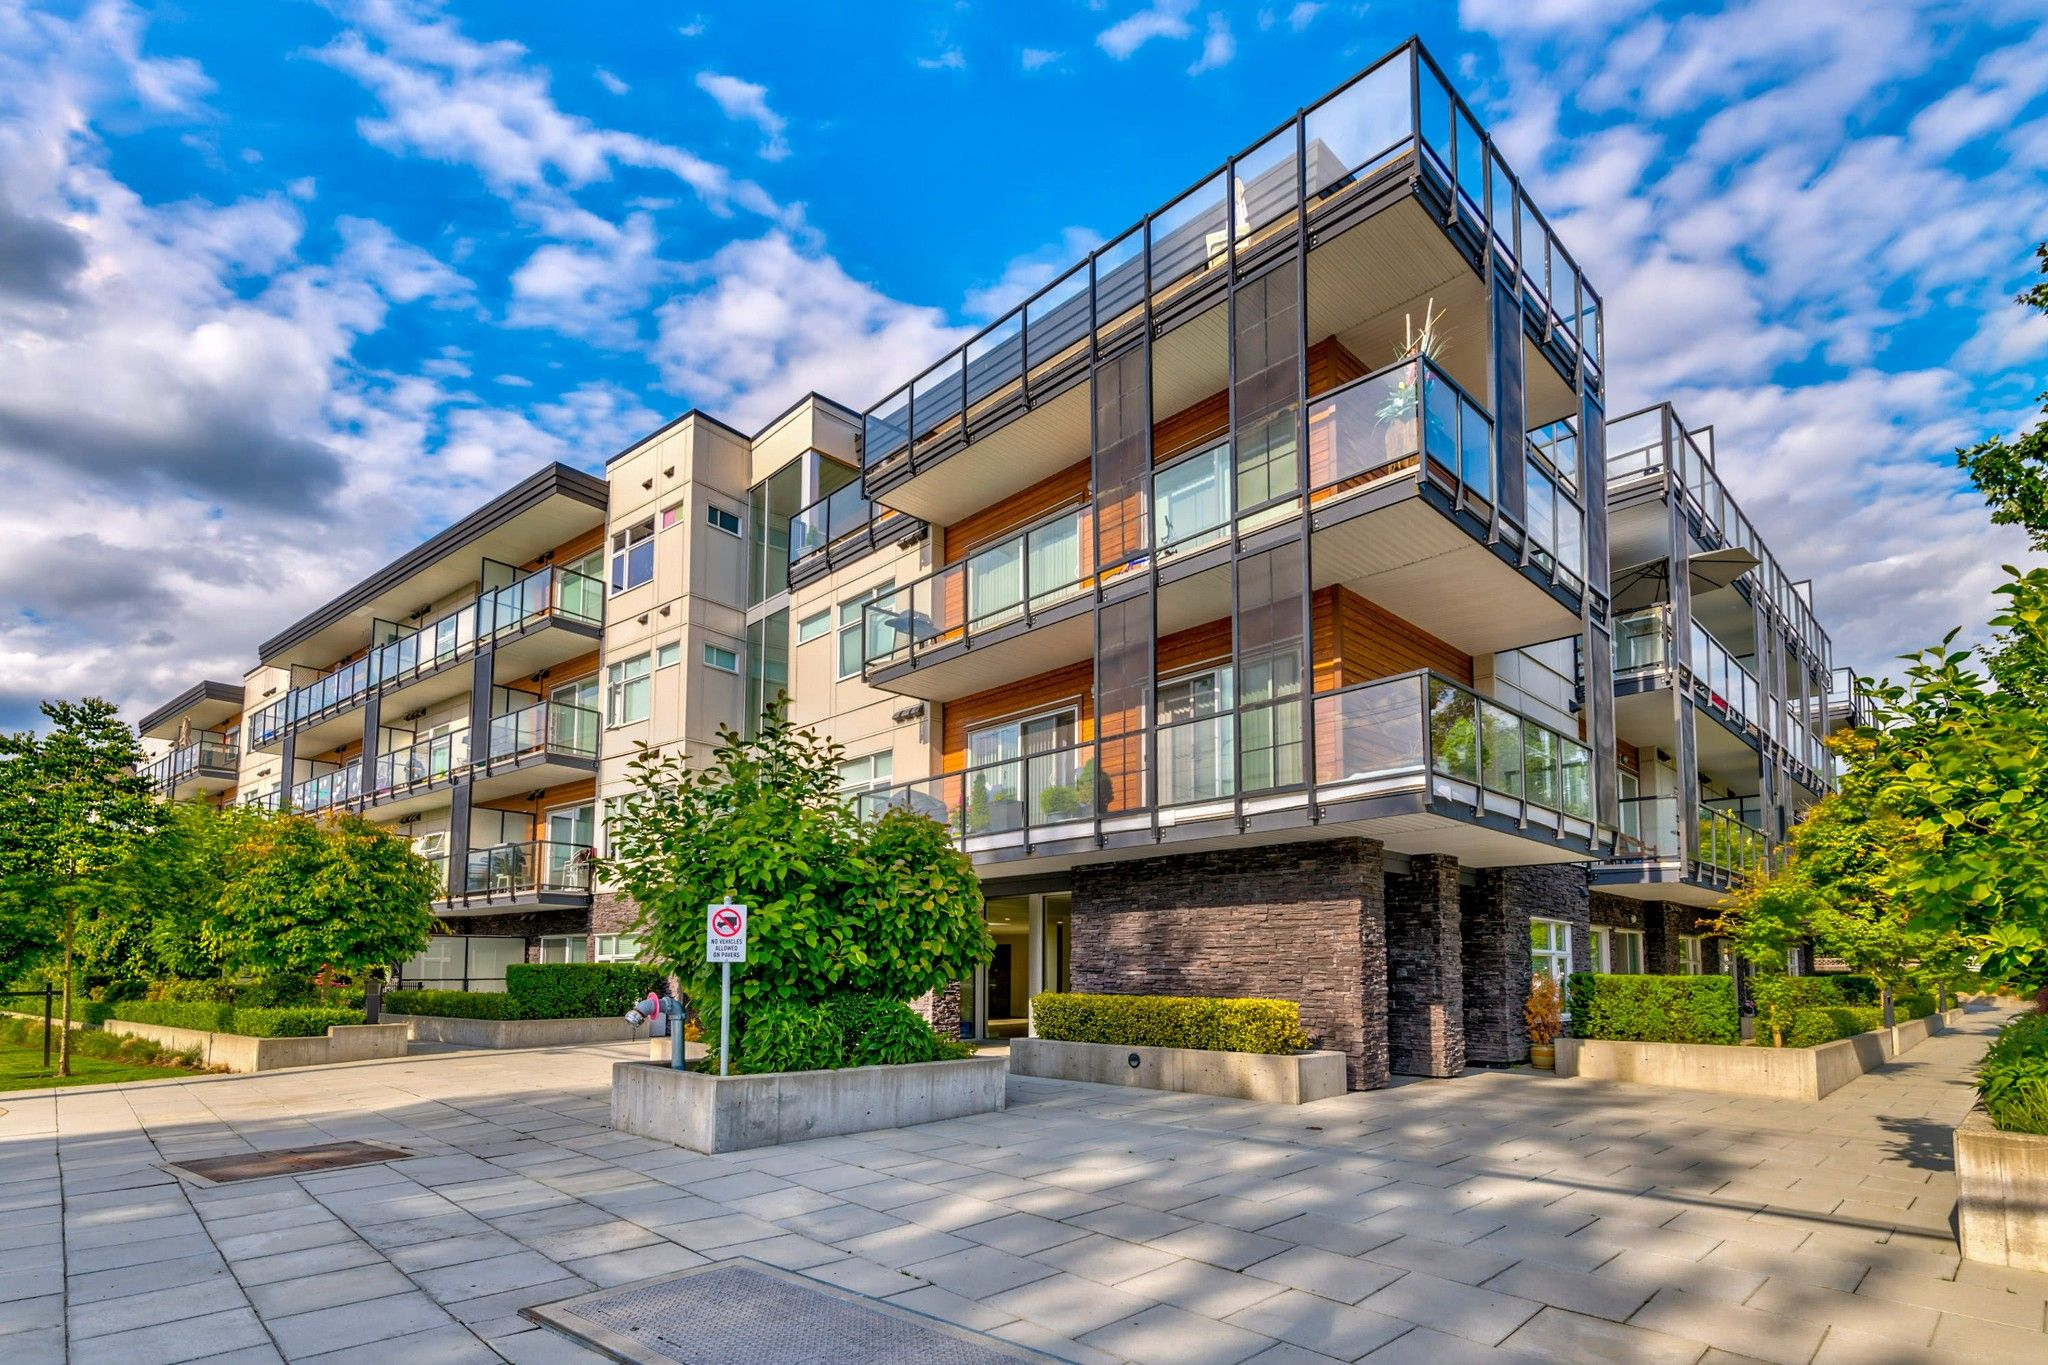 Main Photo: 404 12070 227 Street in Maple Ridge: East Central Condo for sale : MLS®# R2467383